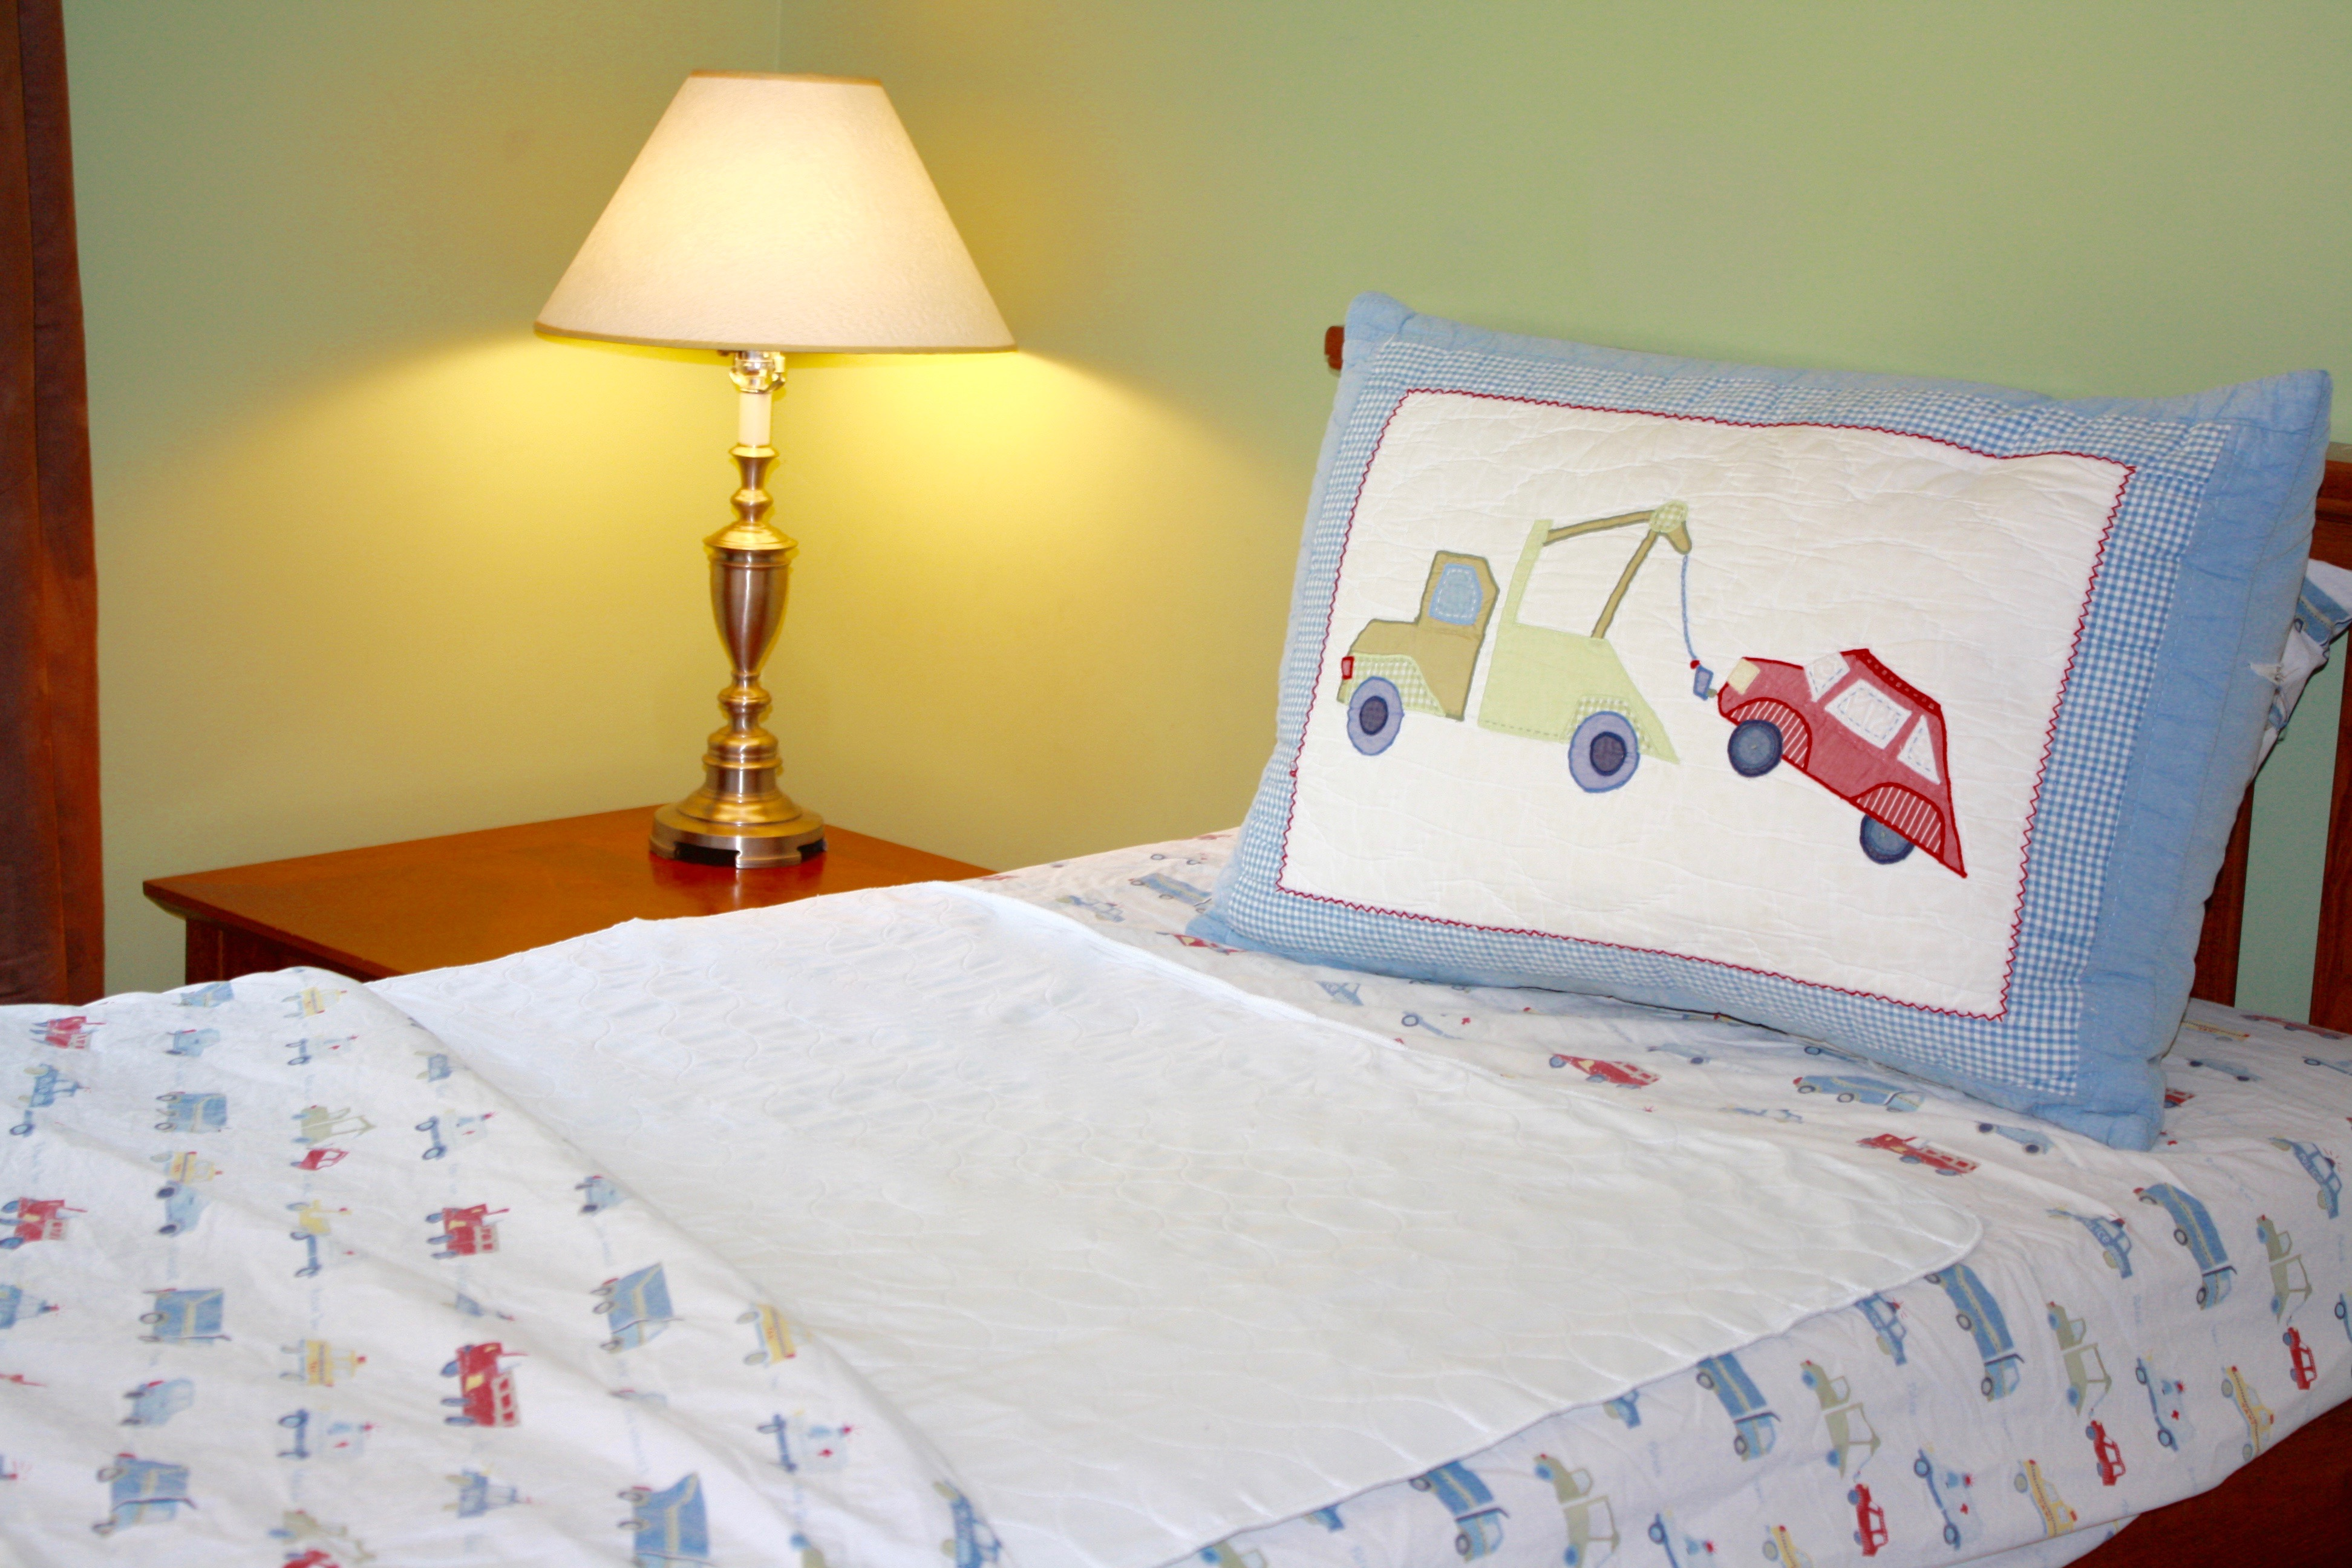 smart complementary in alarm face just a comes interchangeable look few wetting enuresis stickerseverysmart bed with that change store stickers the of bedwetting